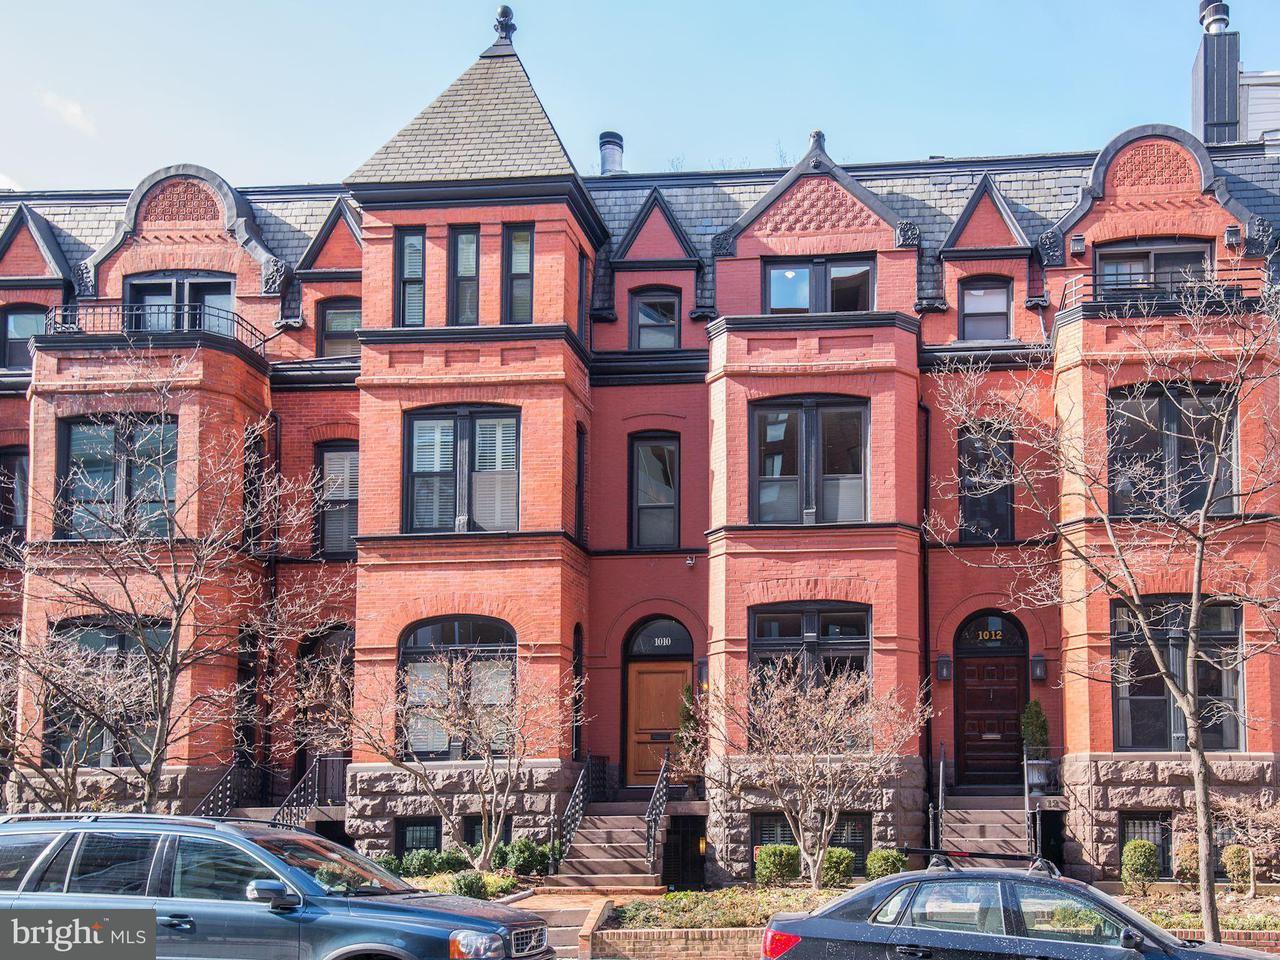 Townhouse for Sale at 1010 22nd St Nw 1010 22nd St Nw Washington, District Of Columbia 20037 United States